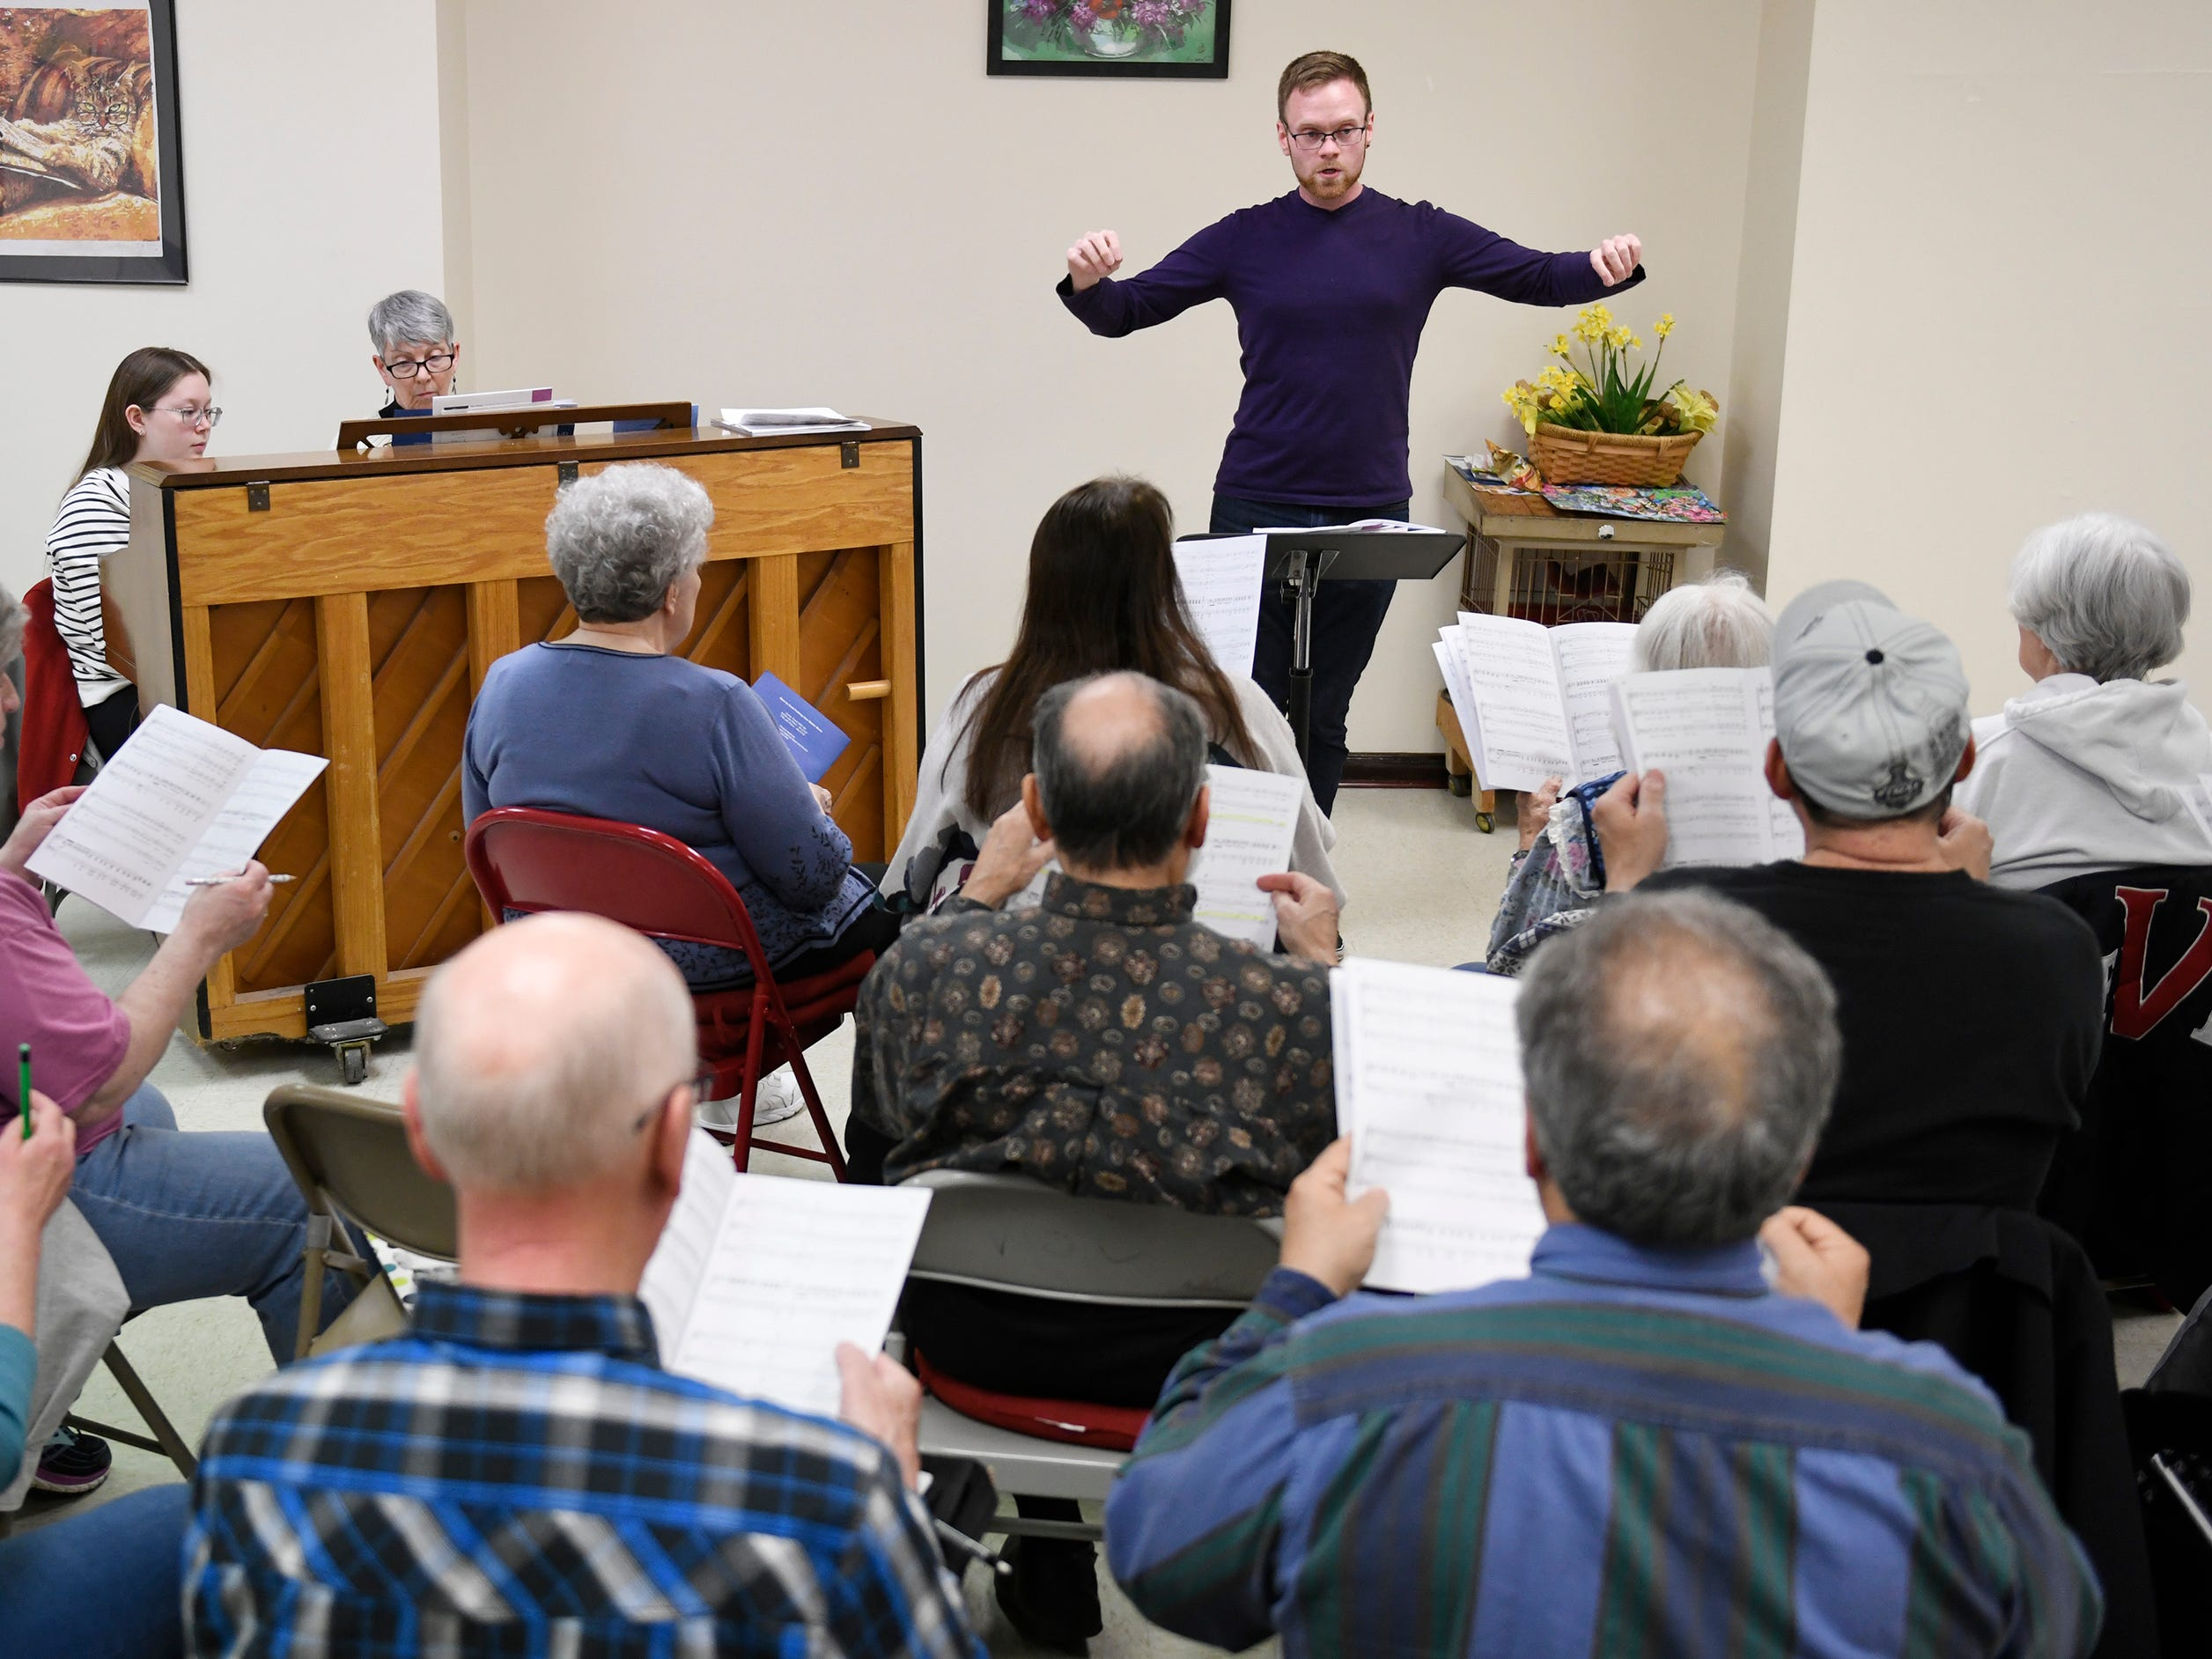 The Singing Ambassadors, under the direction of Kyle Sheppard, rehearse at the Vineland Senior Center on Monday, April 1, 2019.